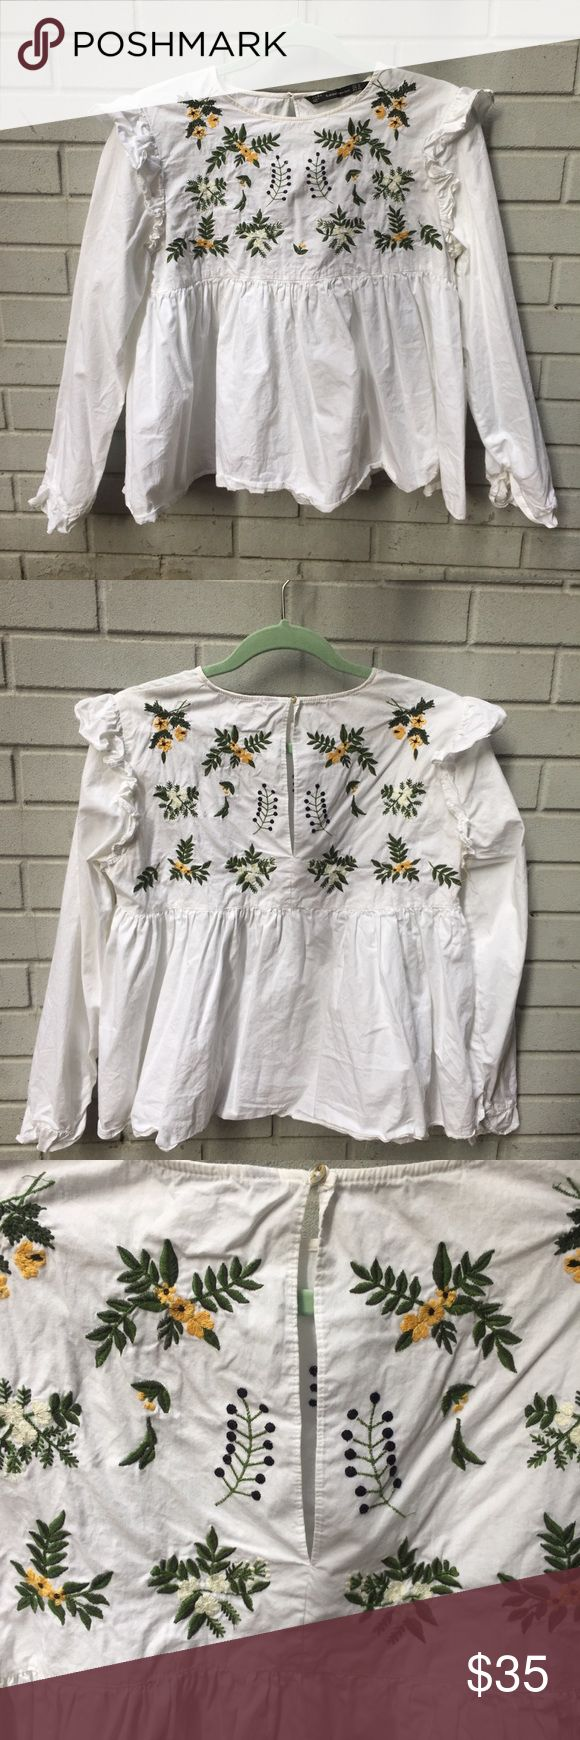 ZARA Women Sweet Embroidery Ruffles Shirt  Embroidered - Ruffles - Shirt - Long Sleeve - Floral - Sweet baby doll look Zara Tops Blouses